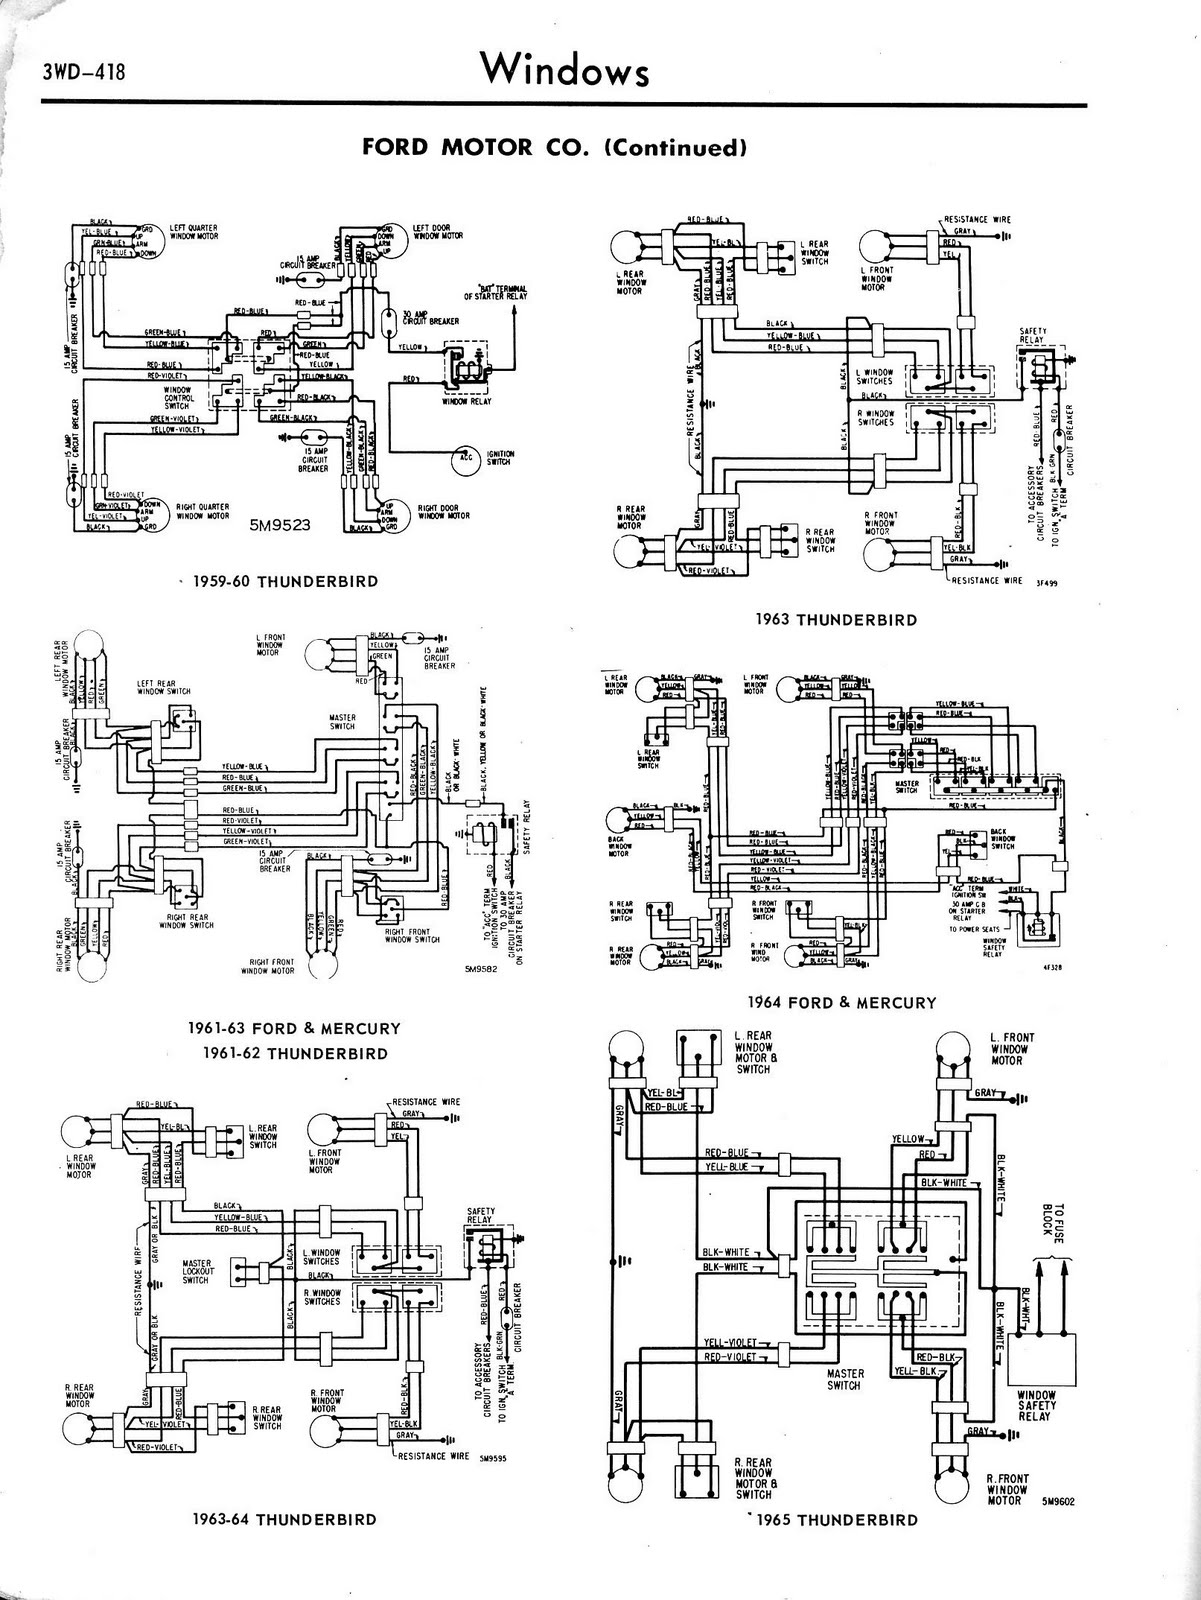 1965+Ford+Thunderbird+Window+Controls+Diagram wiring diagram for 1972 ford f100 the wiring diagram  at soozxer.org